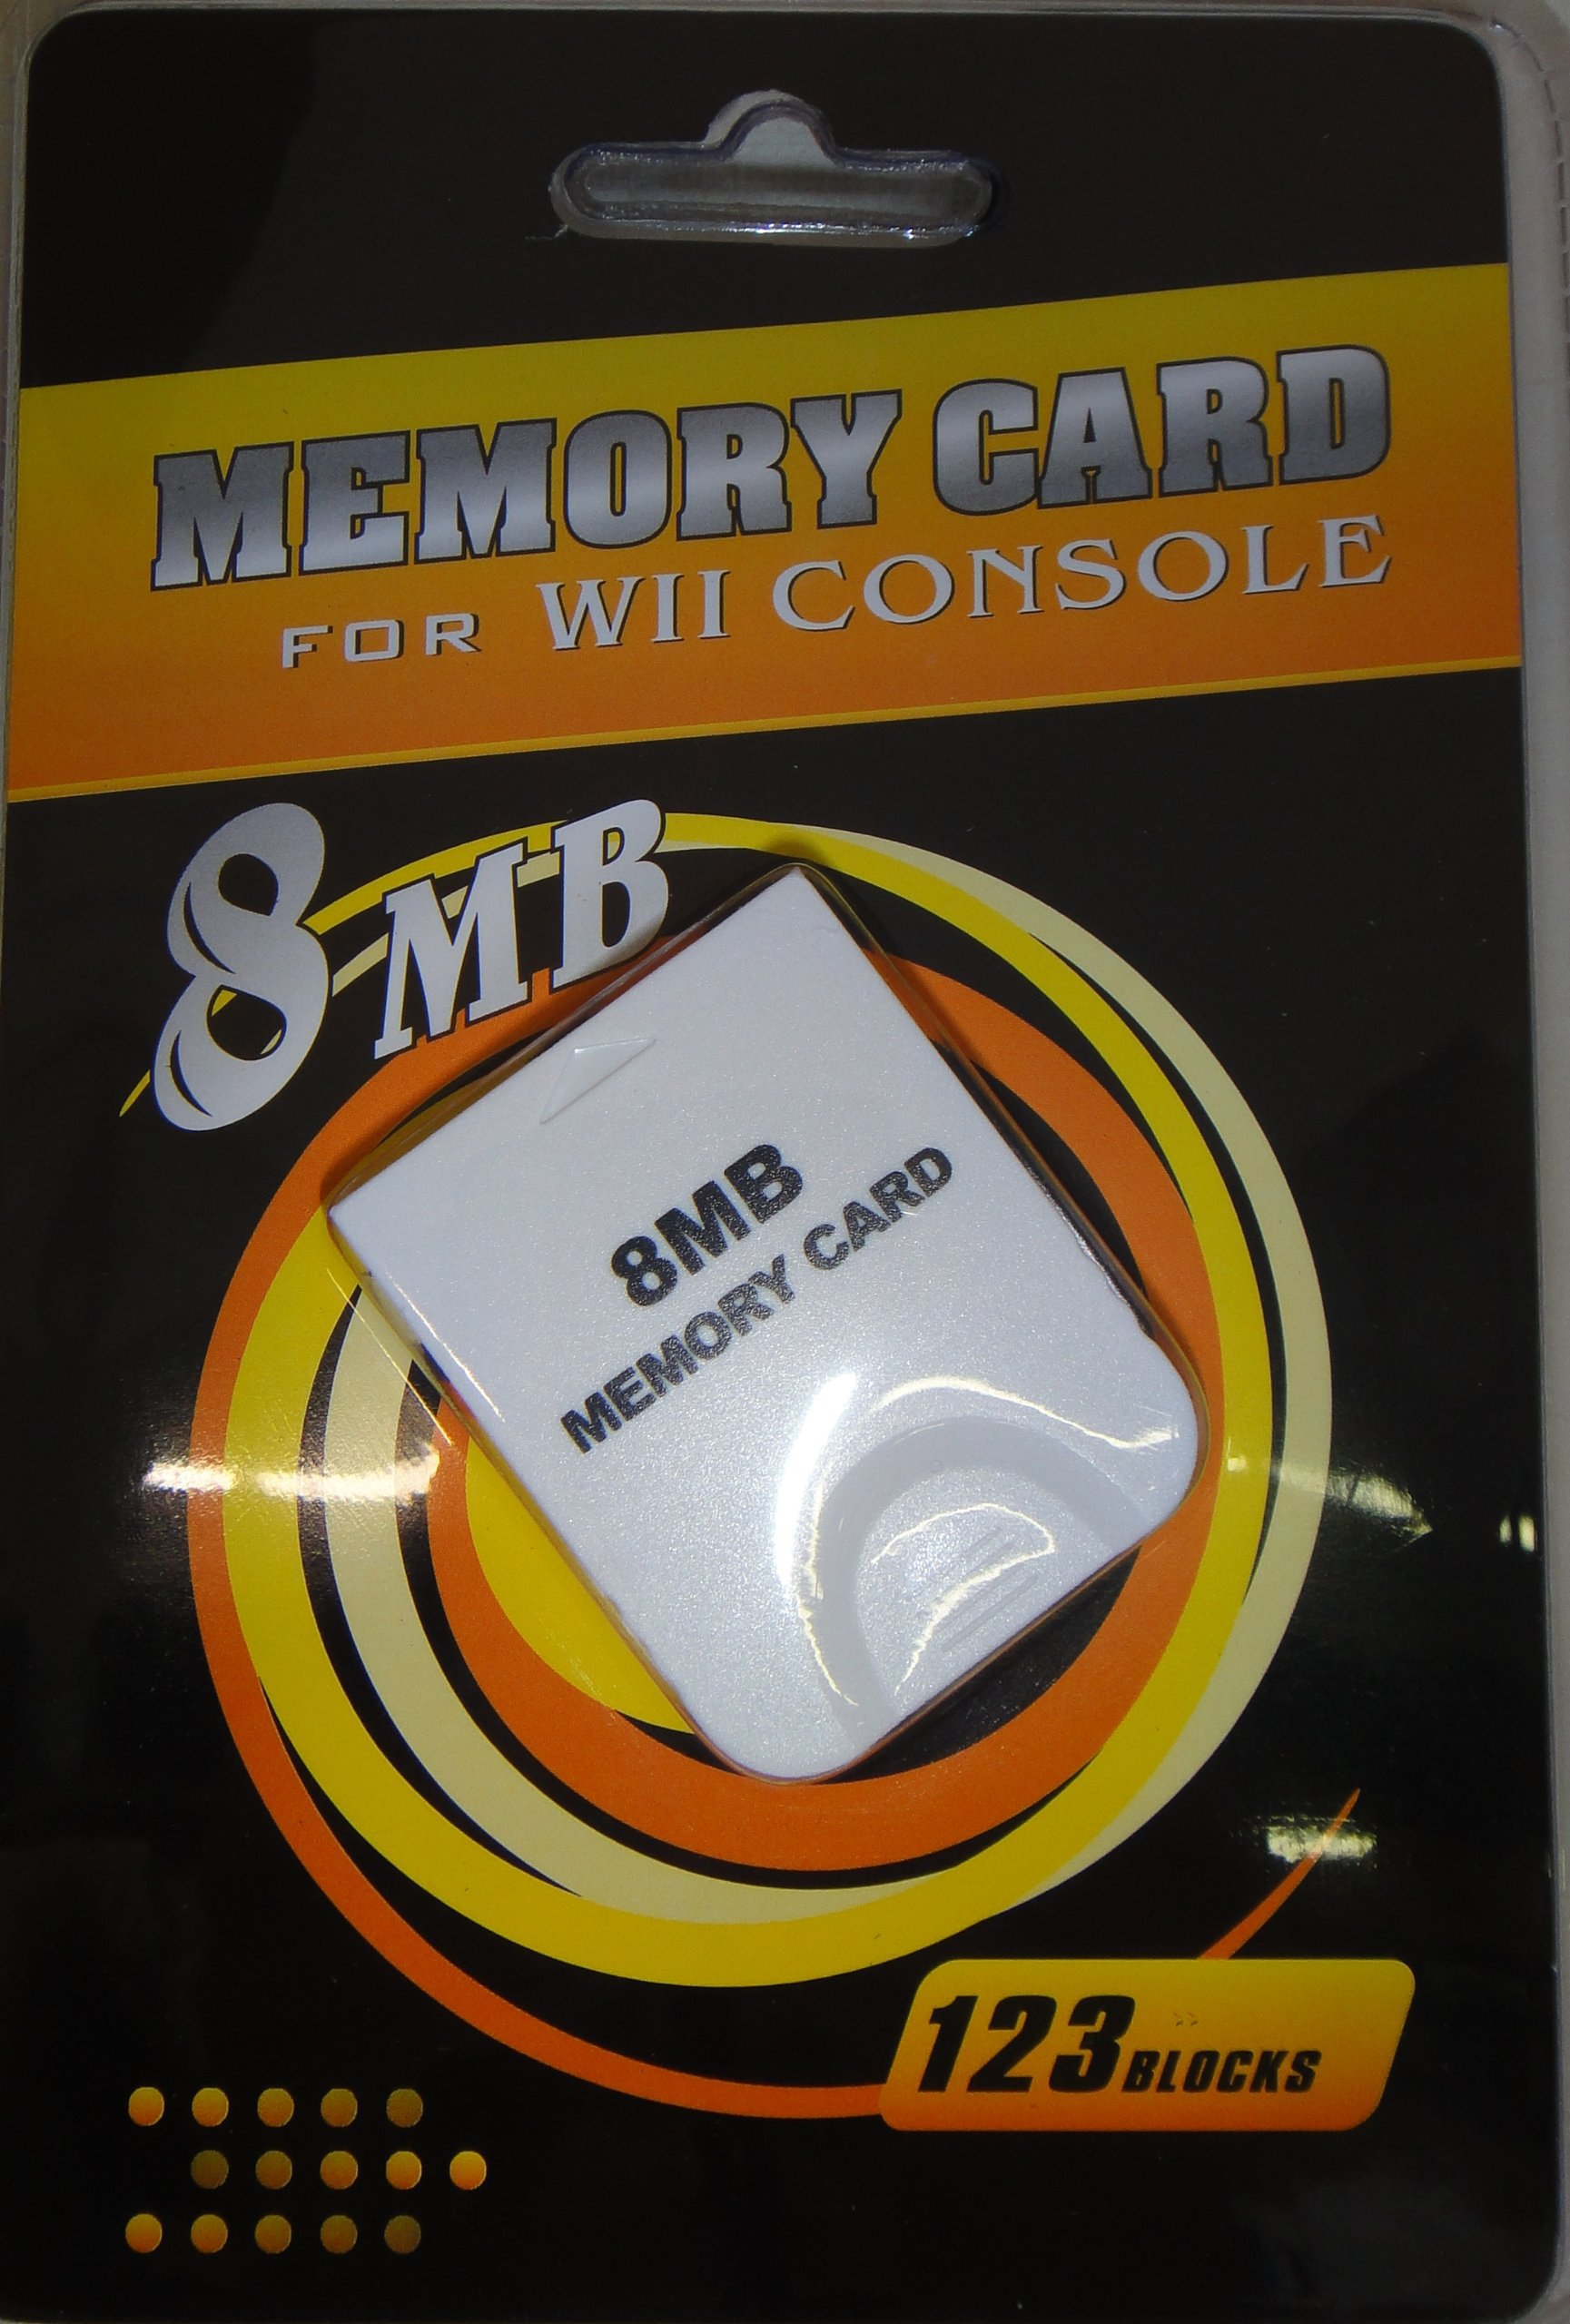 Ngc Memory Card 8mb For Wii and Game Cube by Orbital Accessories